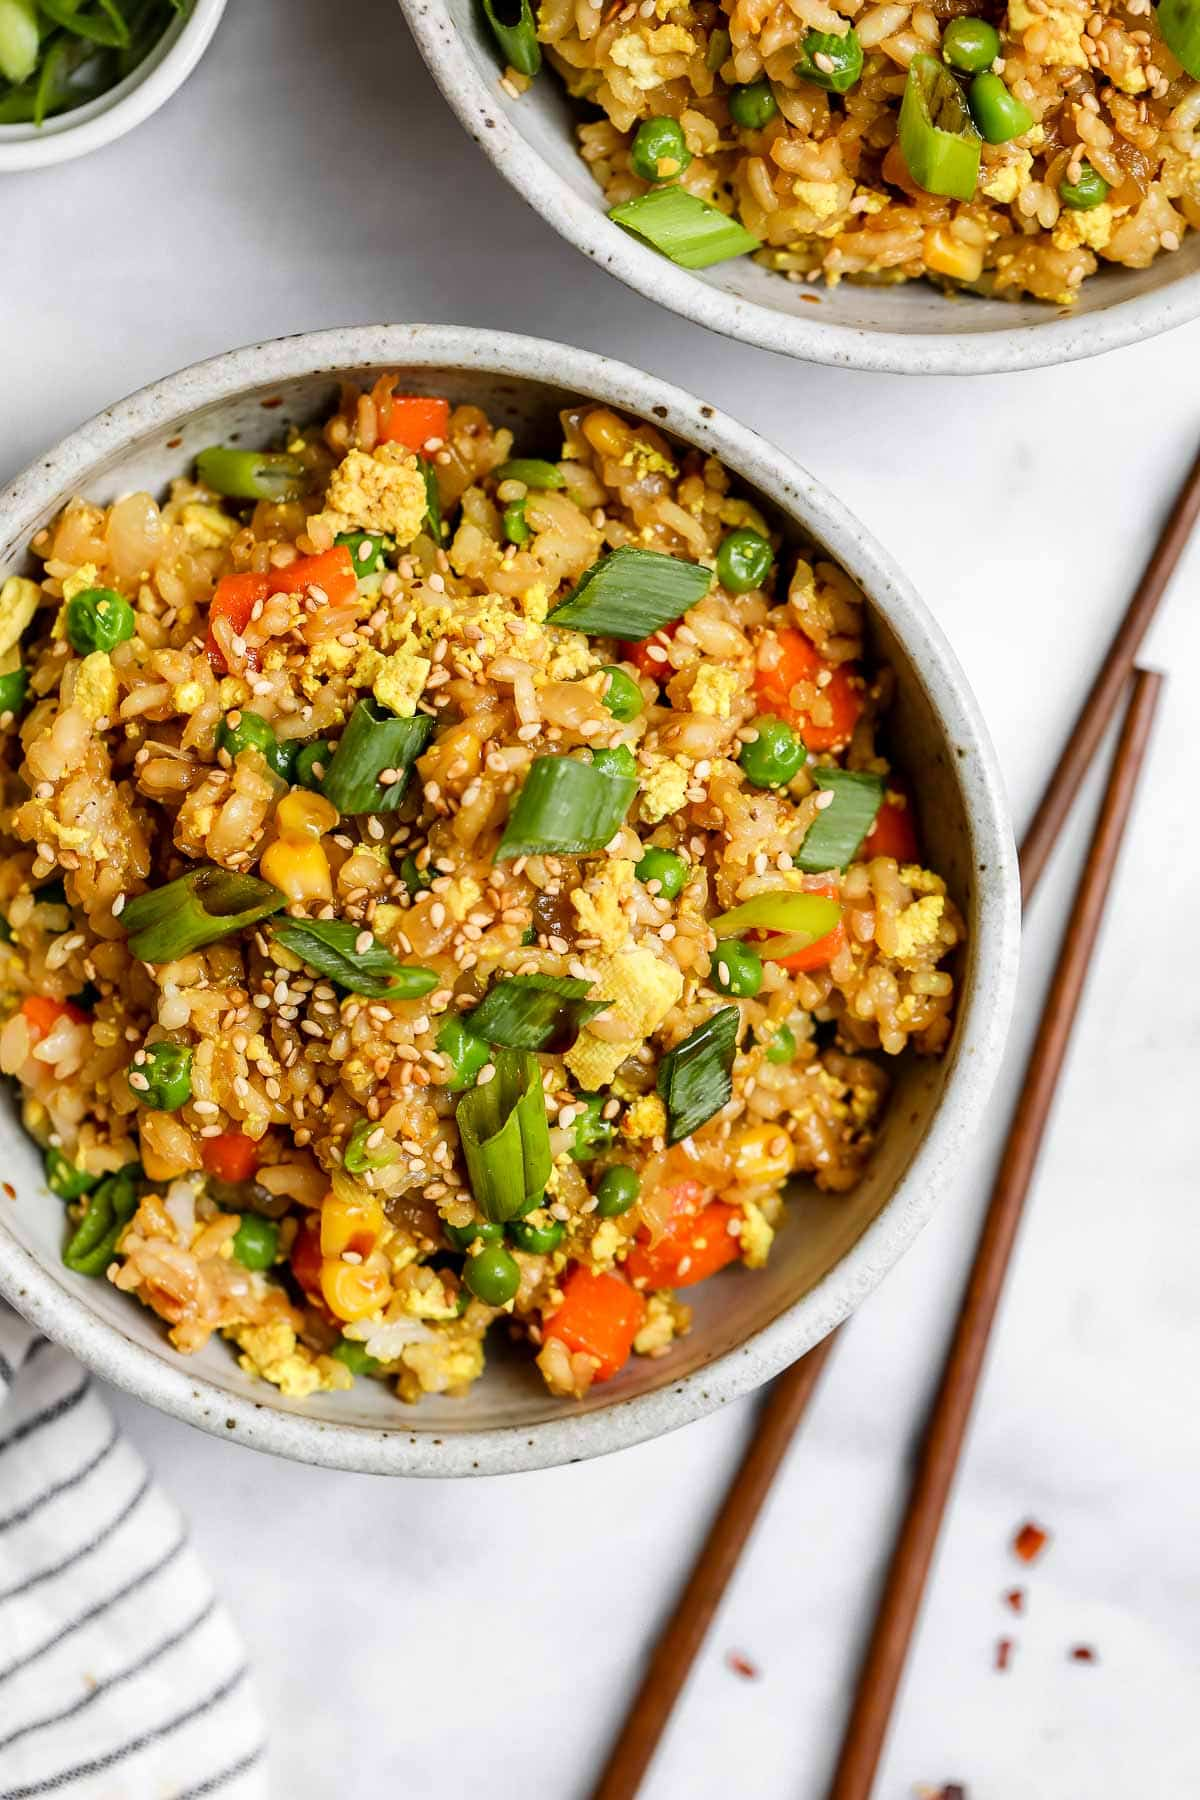 Overhead shot of the vegan fried rice with sesame seeds.